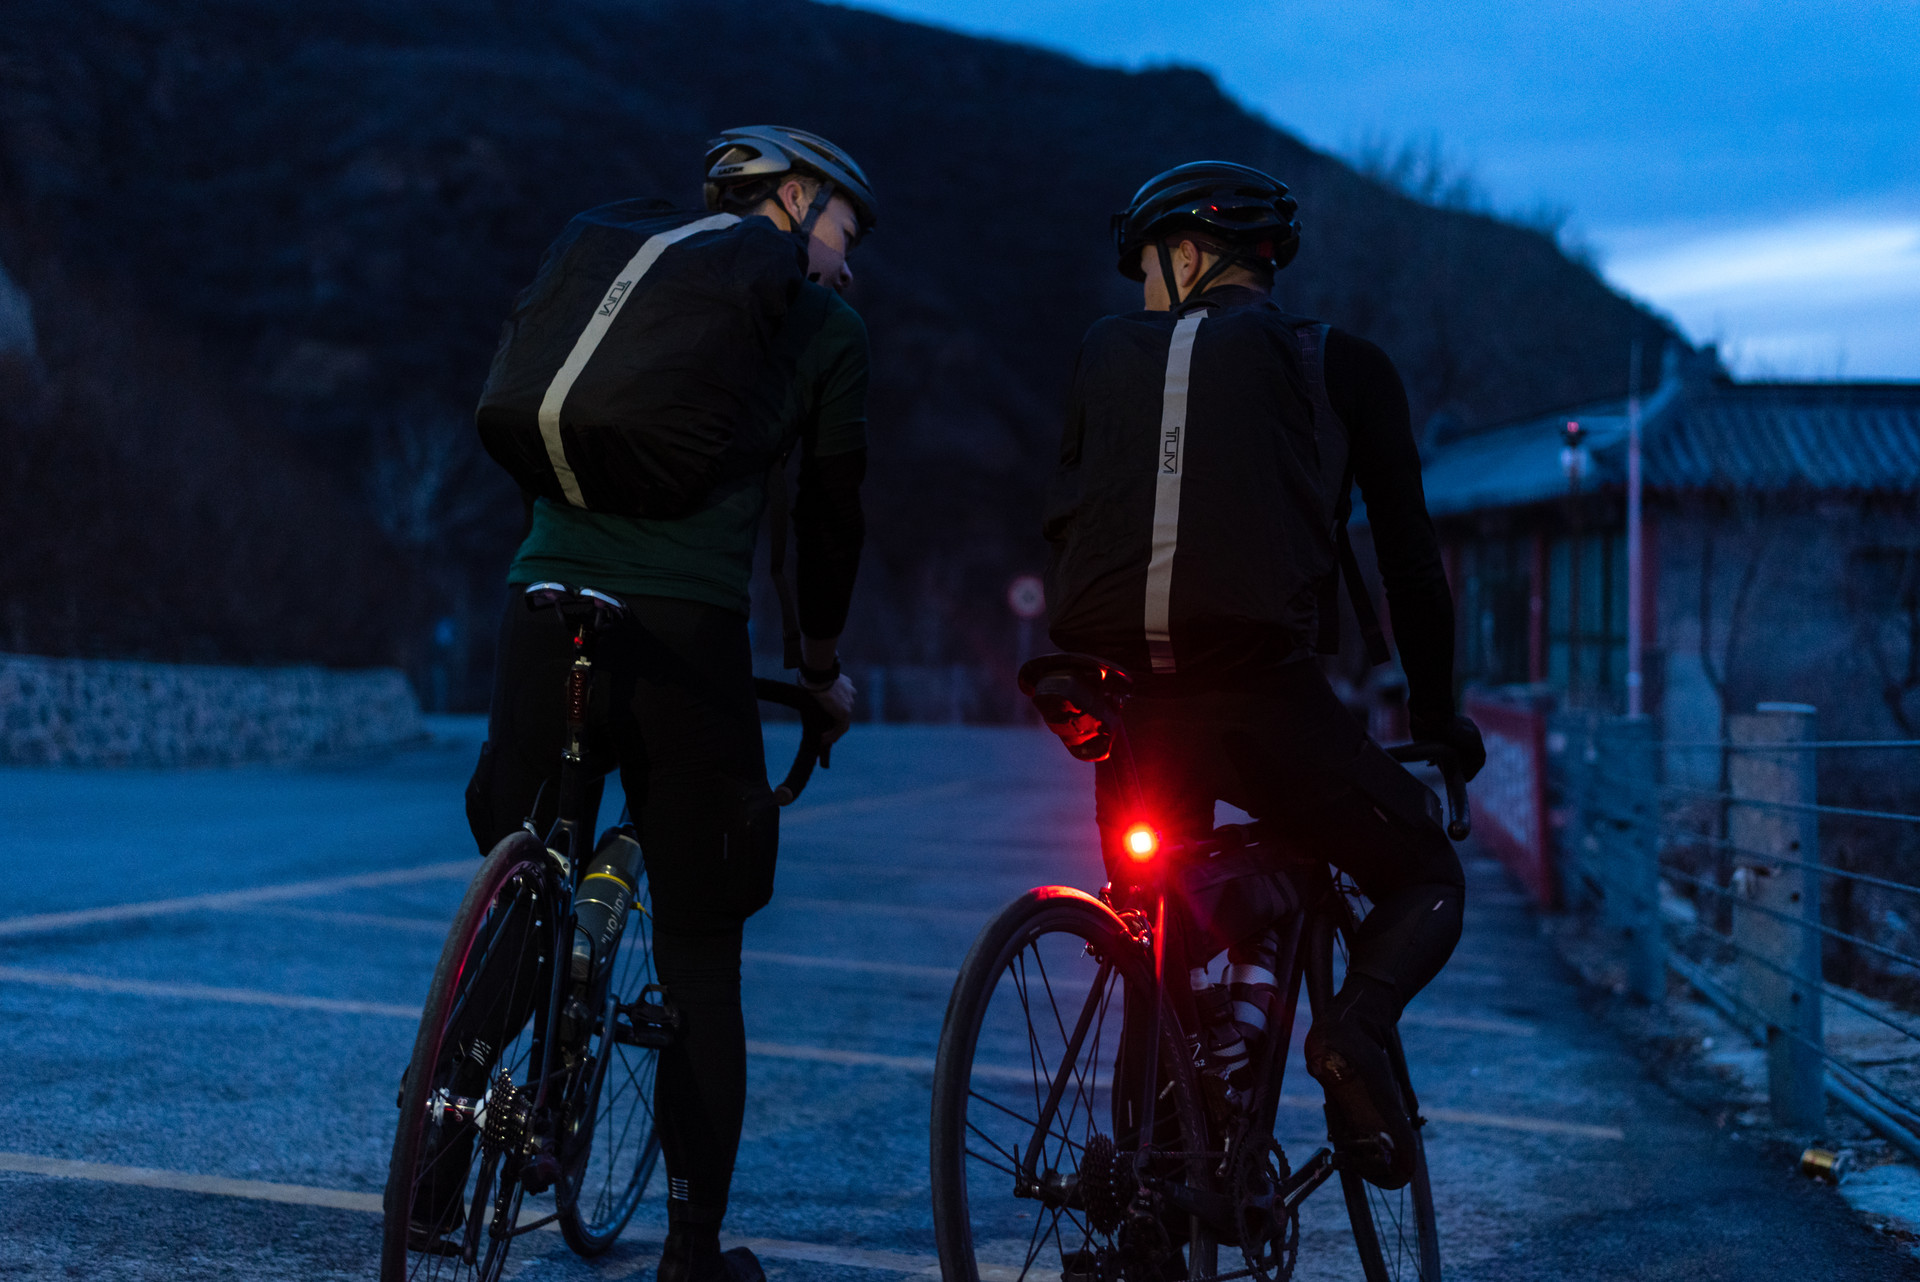 2 cyclist with TUMI backpacks at night in temple